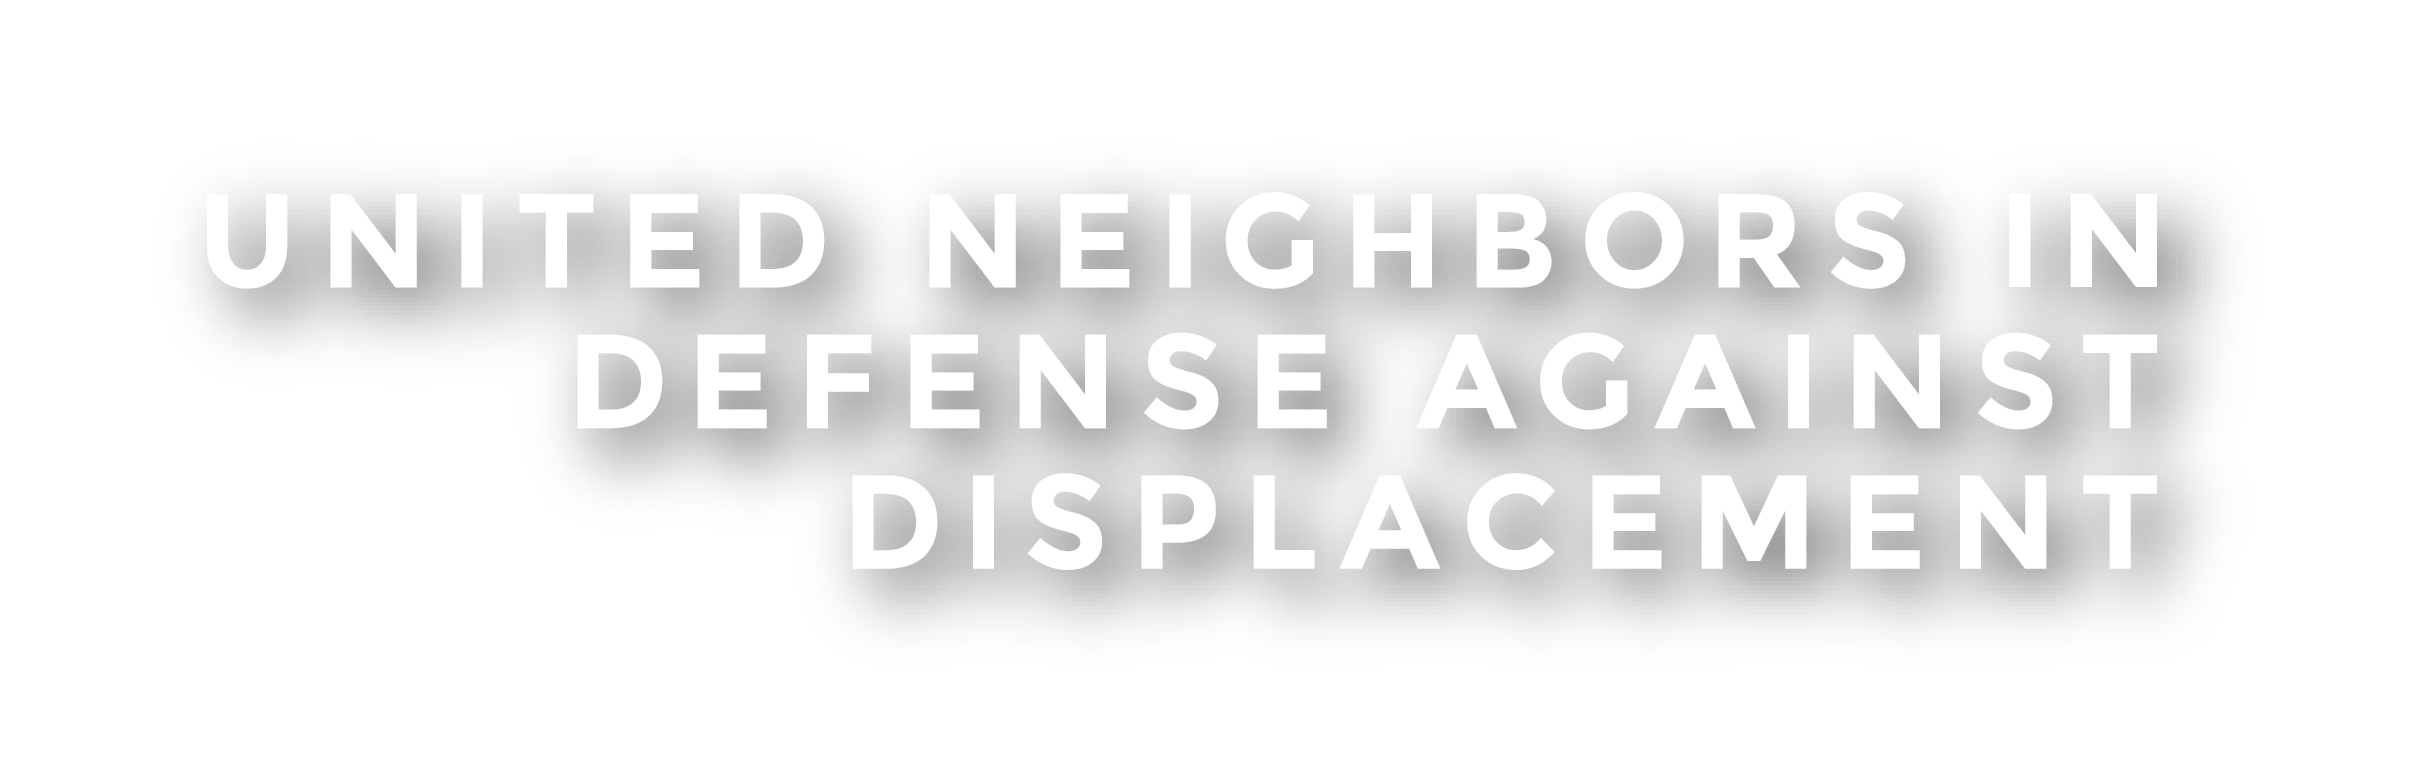 United Neighbors In Defense Against Displacement